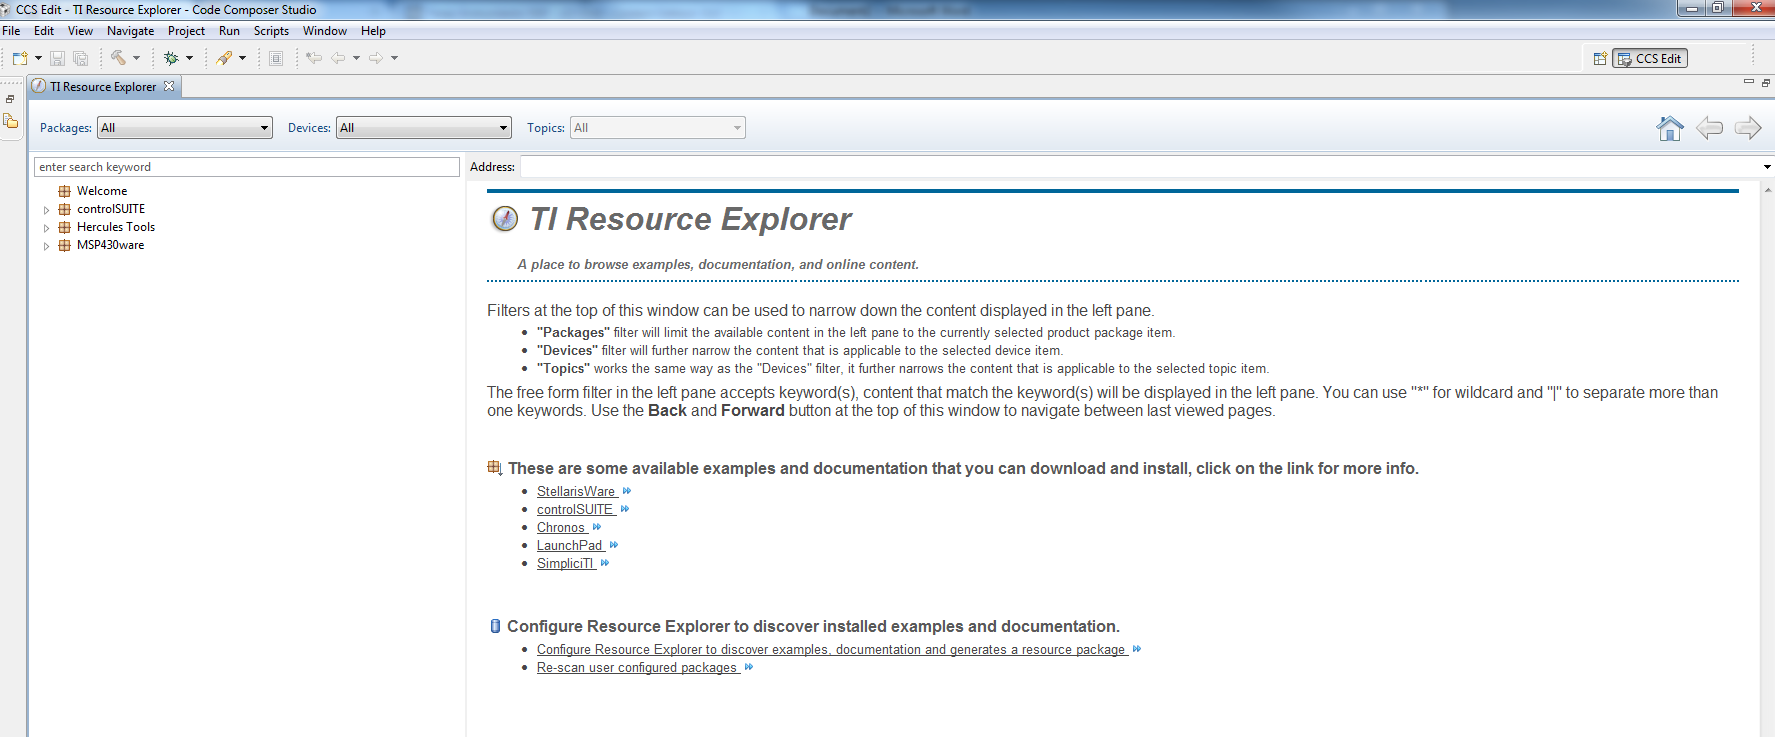 TI Resource Explorer- Give it a try and tell us what you